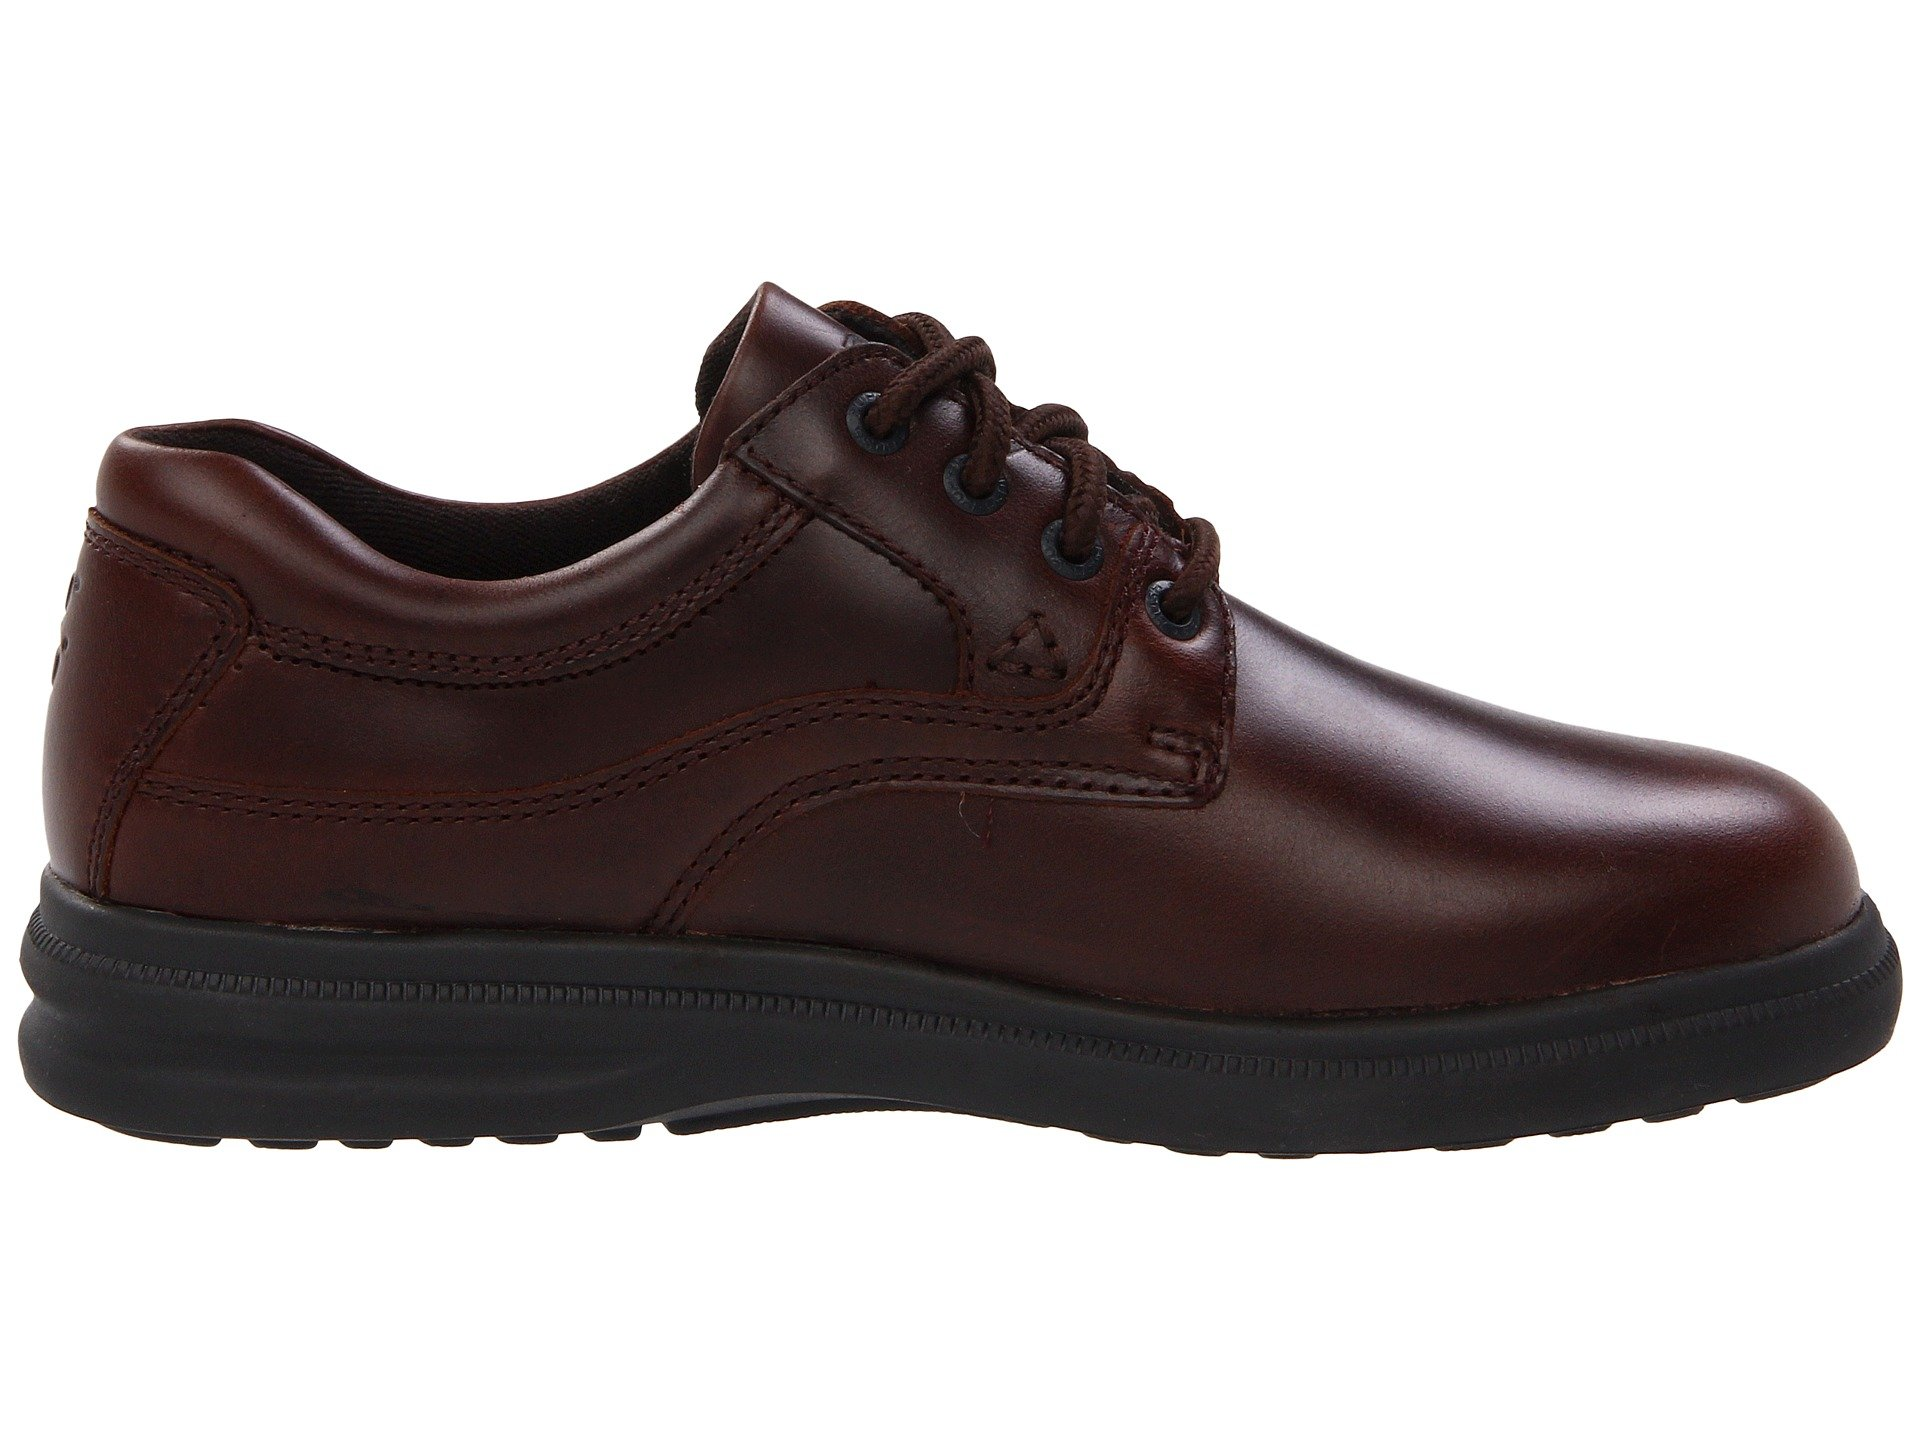 up Hush Brown Pull Leather Puppies Glen wxaRpaI0Z